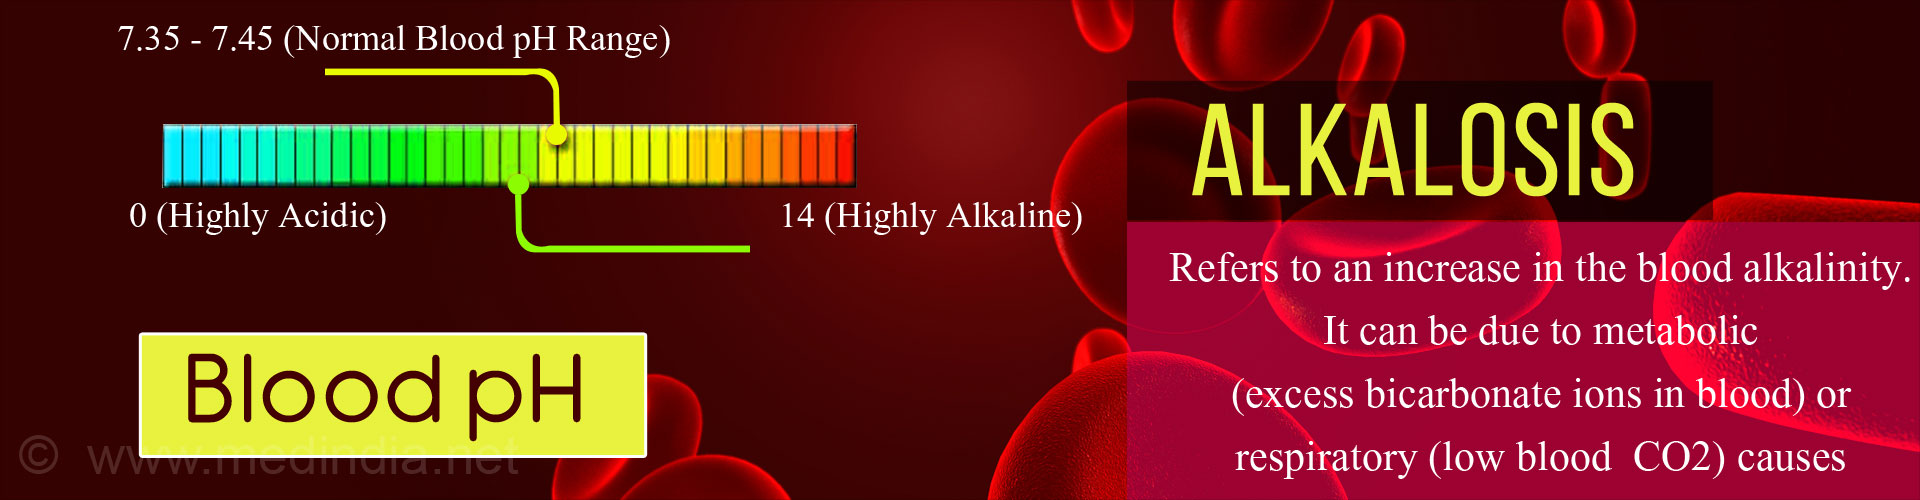 Alkalosis - Causes, Symptoms, Diagnosis, Treatment & Prevention